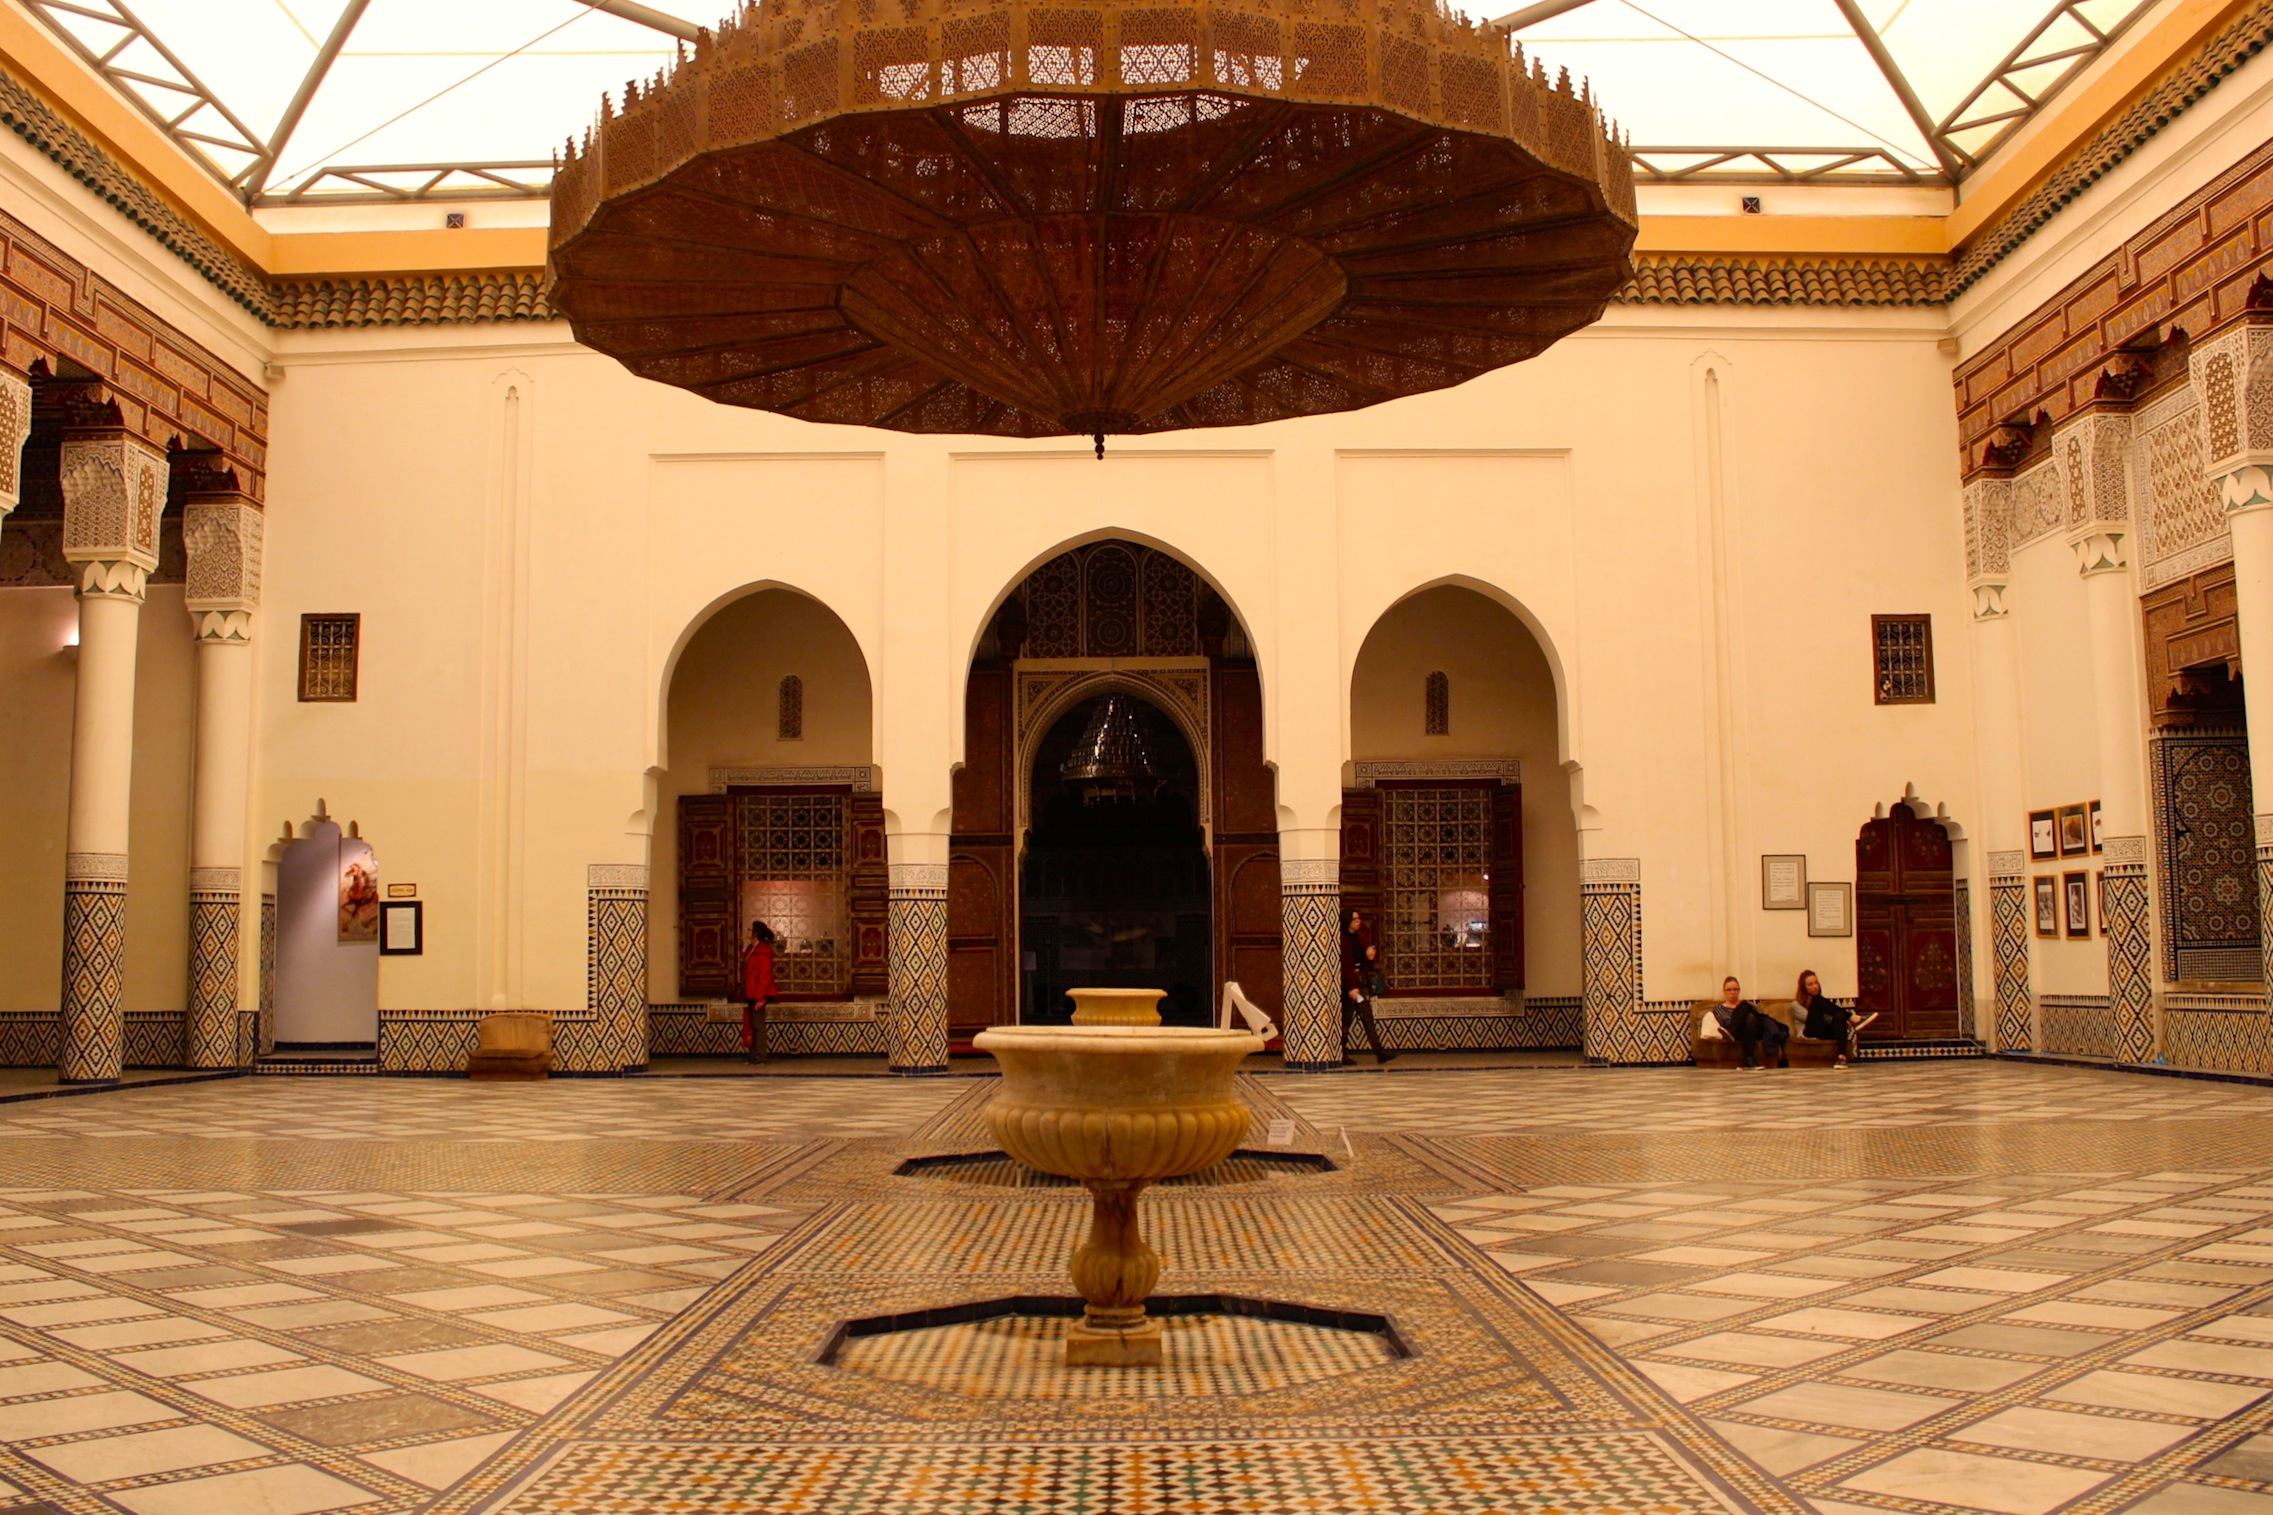 Museum of Marrakech